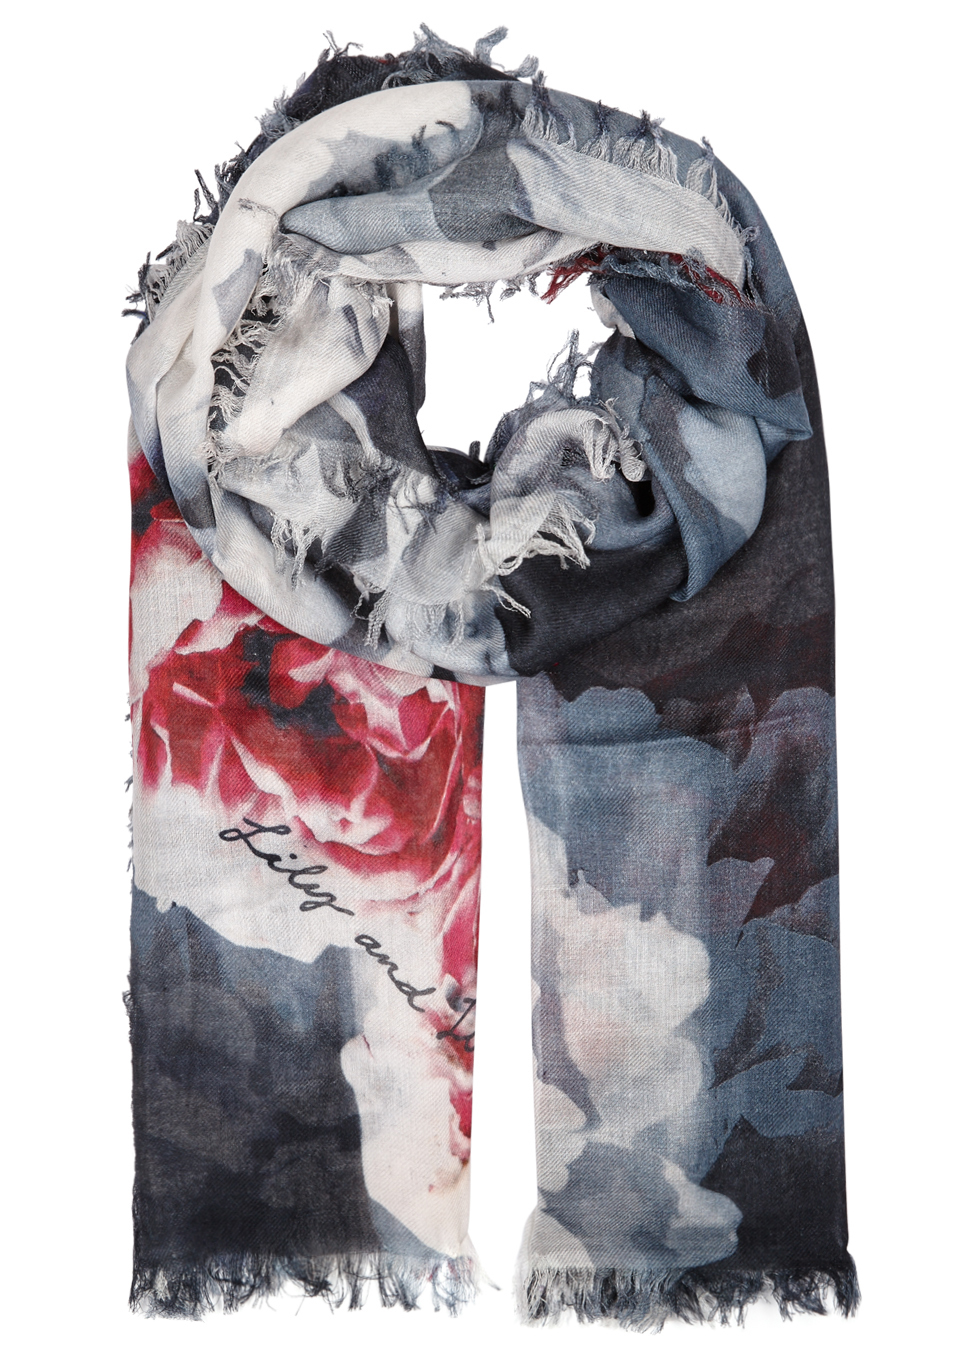 Connie Floral Print Modal Blend Scarf - predominant colour: navy; occasions: casual; type of pattern: heavy; style: regular; size: standard; material: fabric; pattern: florals; multicoloured: multicoloured; season: a/w 2016; wardrobe: highlight